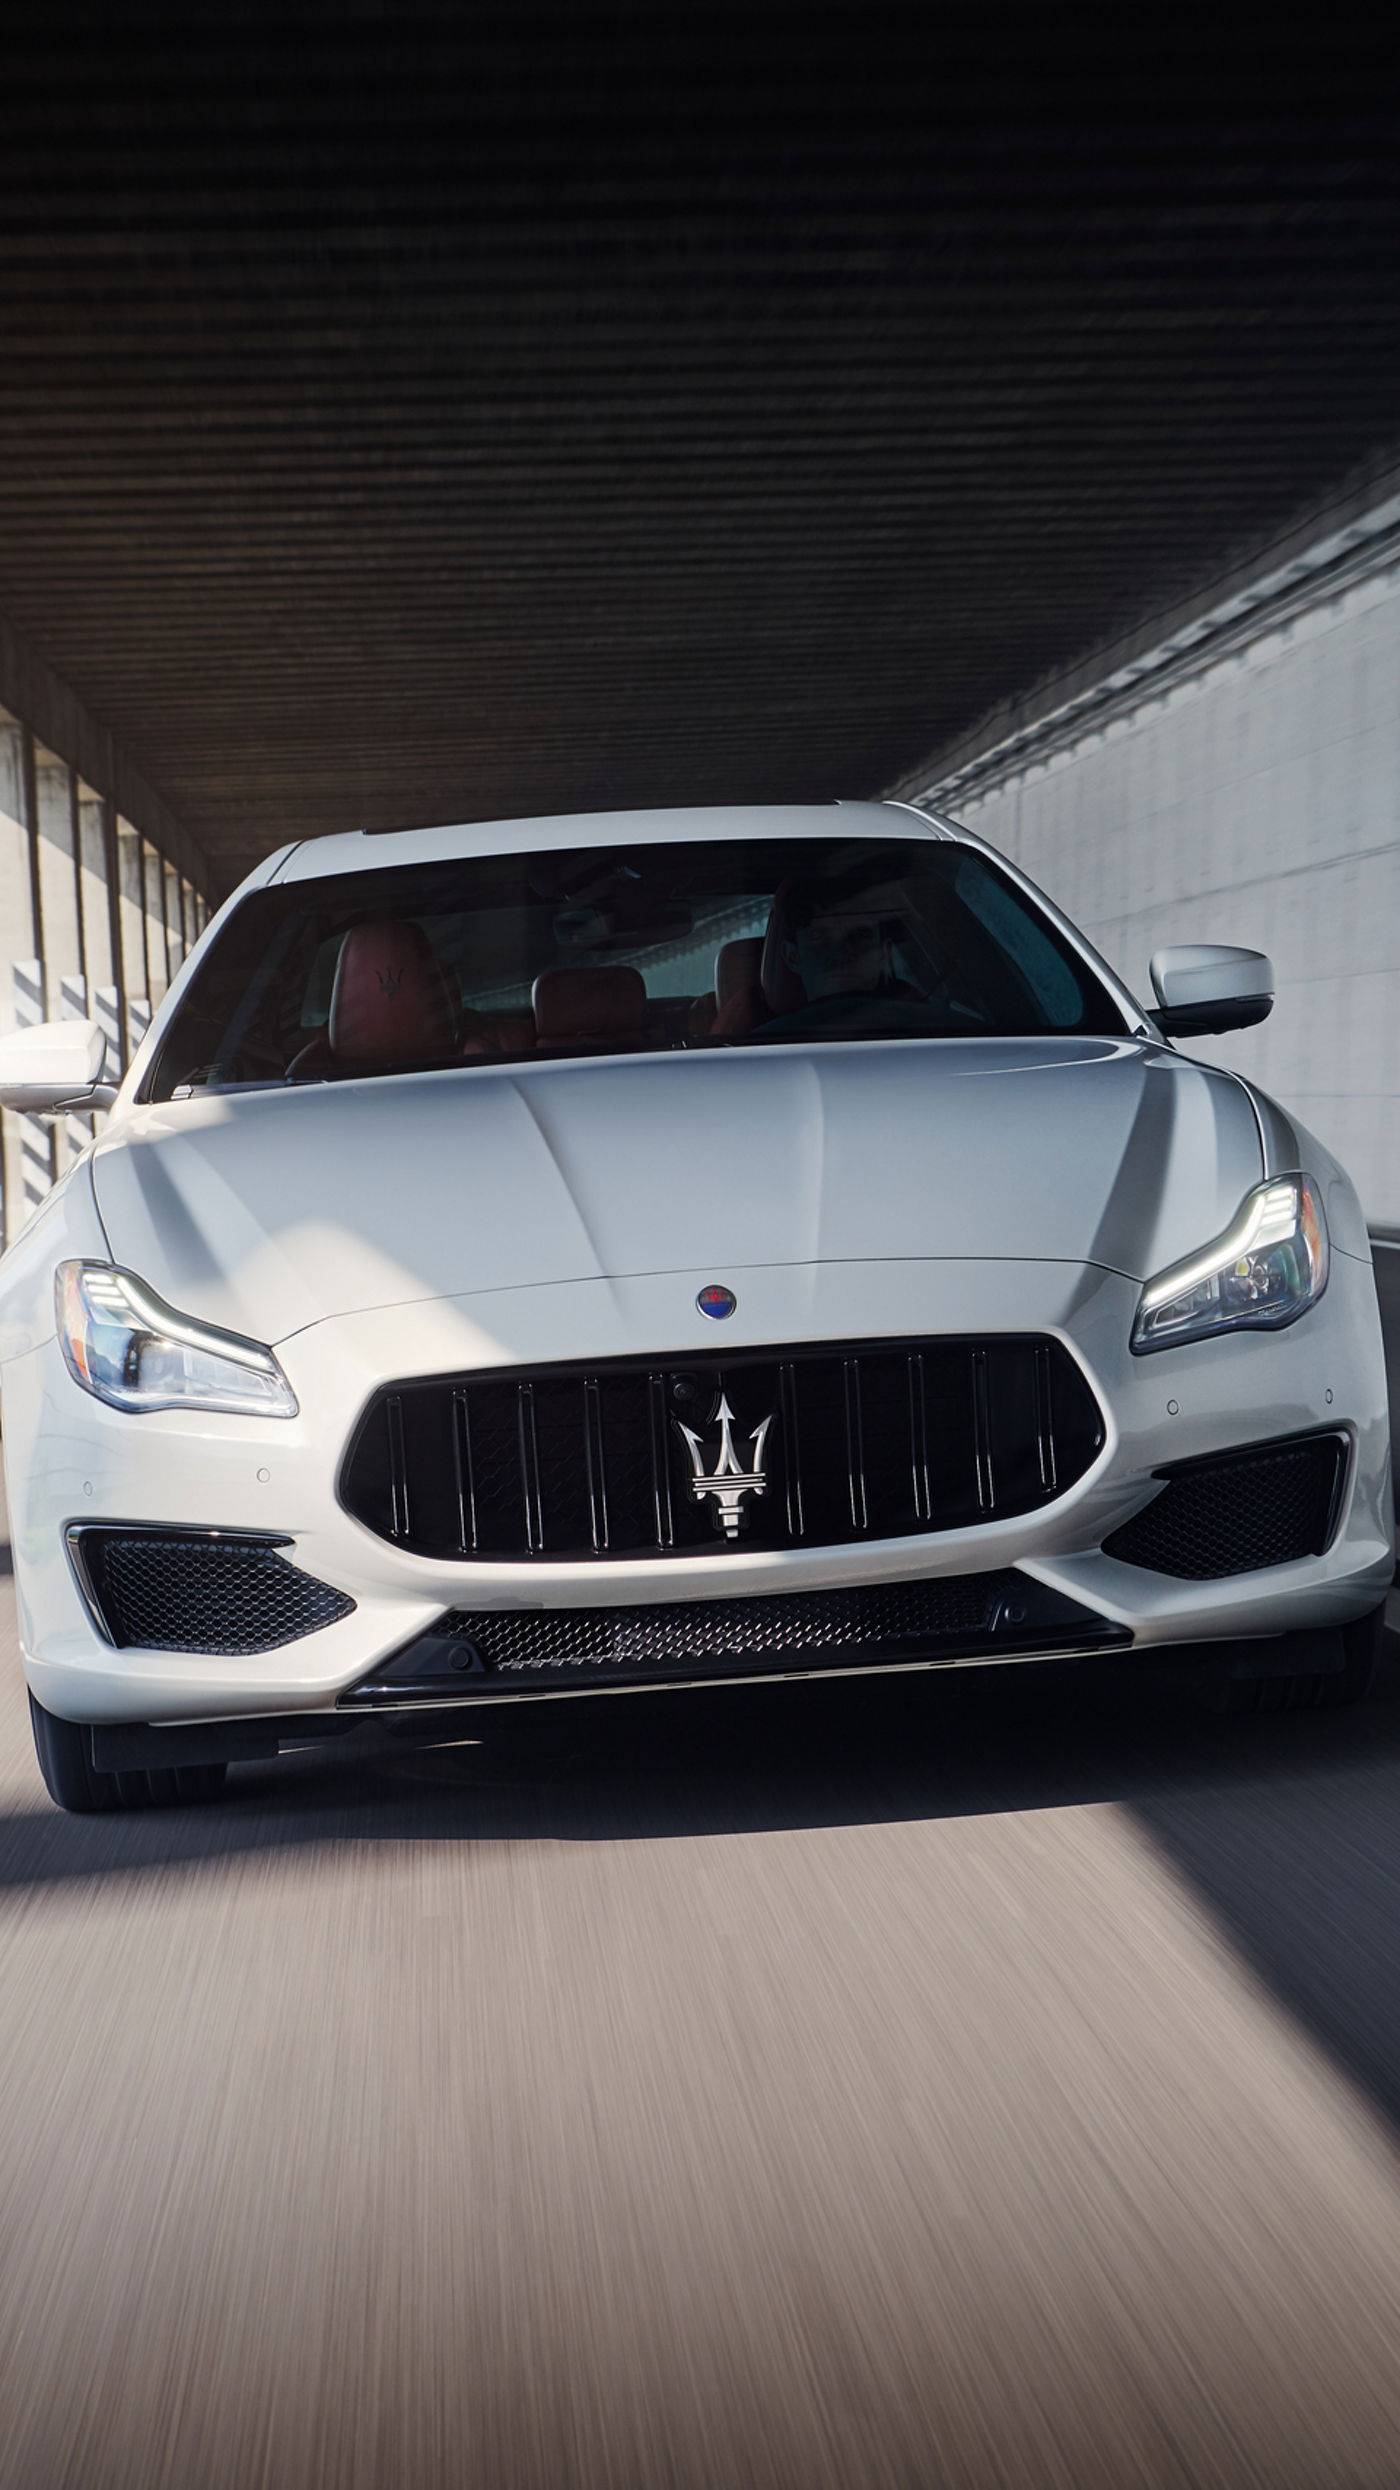 Quattroporte GTS –on the road, front view